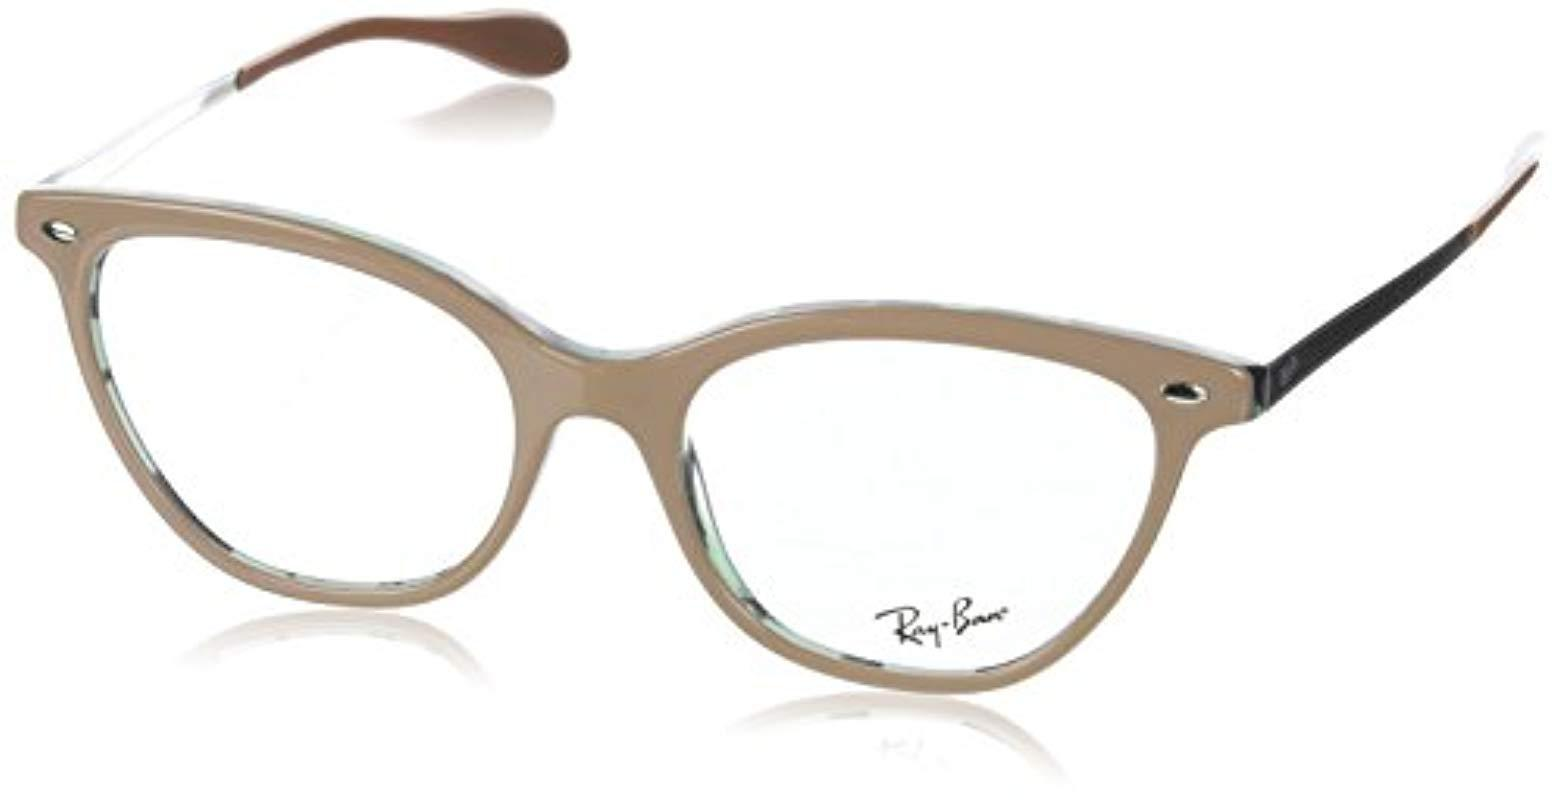 af220a44e74a4 Ray-Ban. 0Rx5360